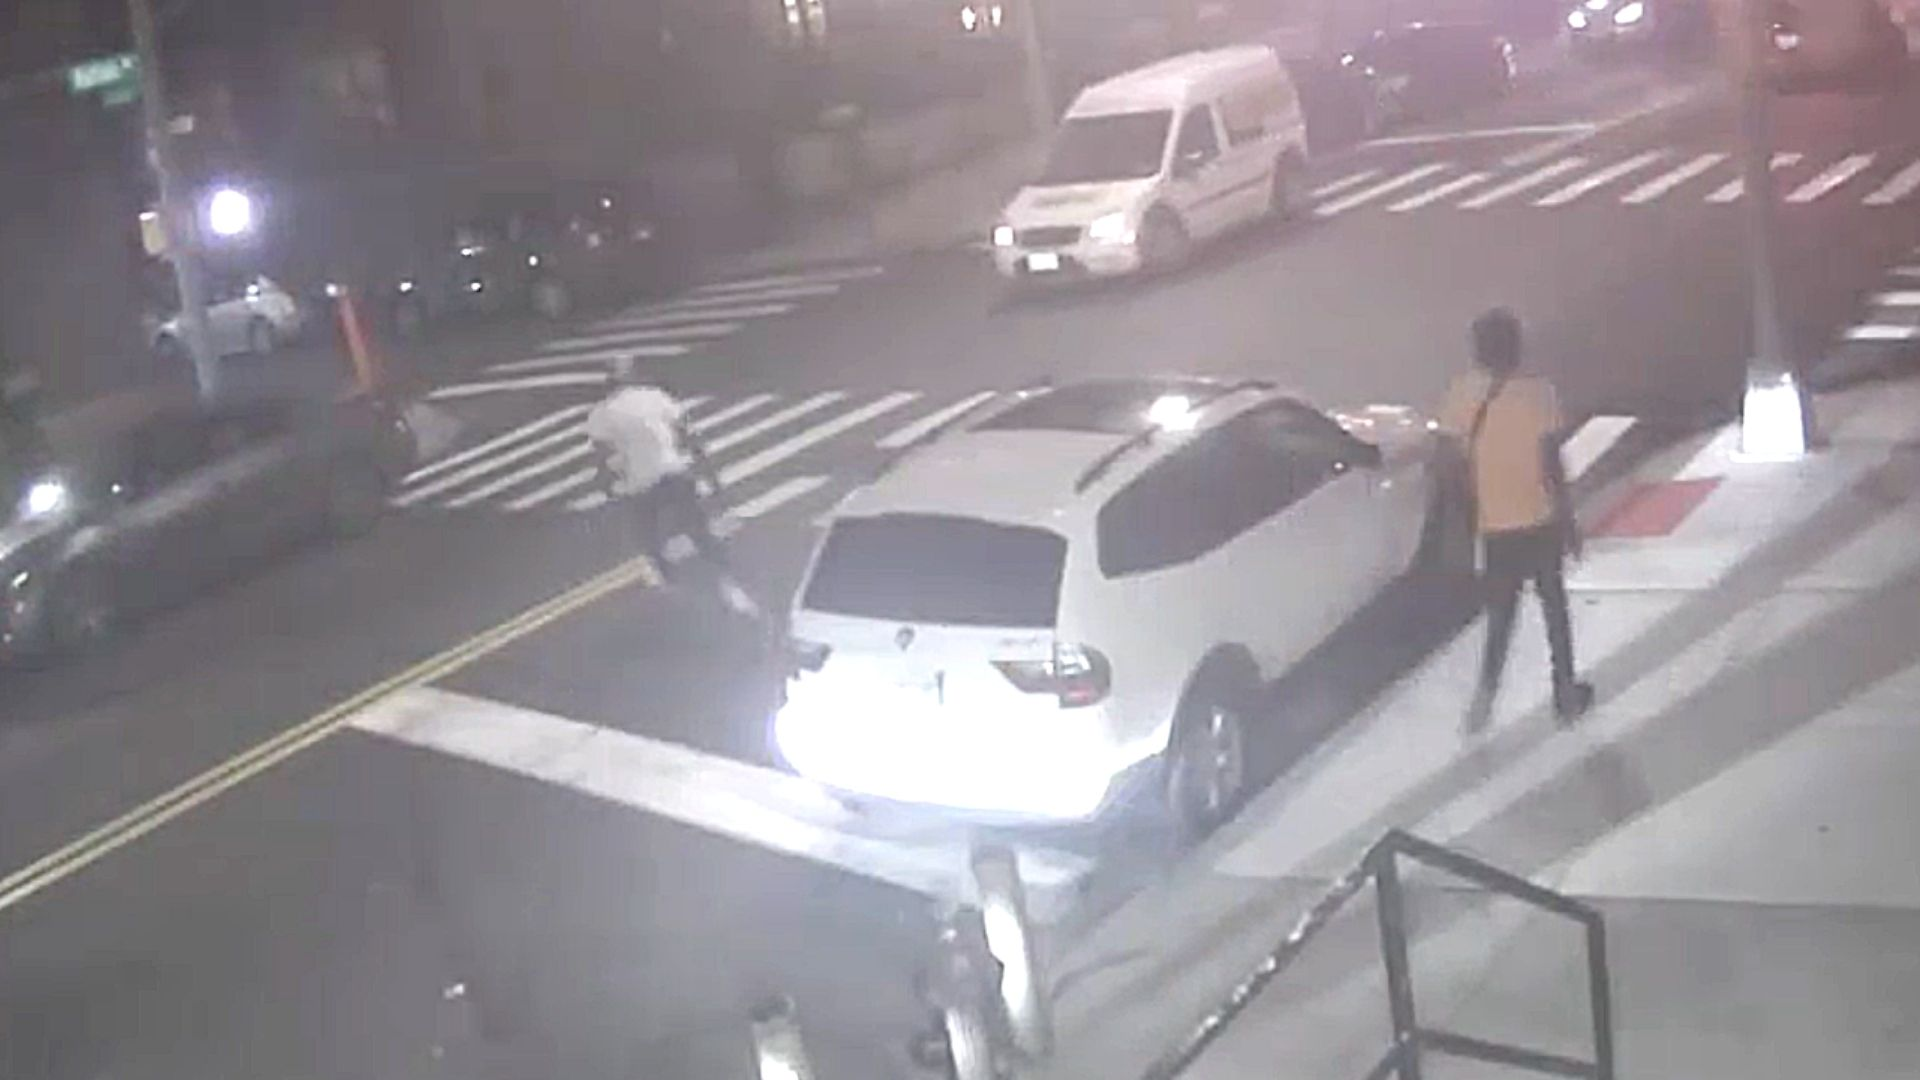 Surveillance image of a shootout in Crown Heights, Brooklyn